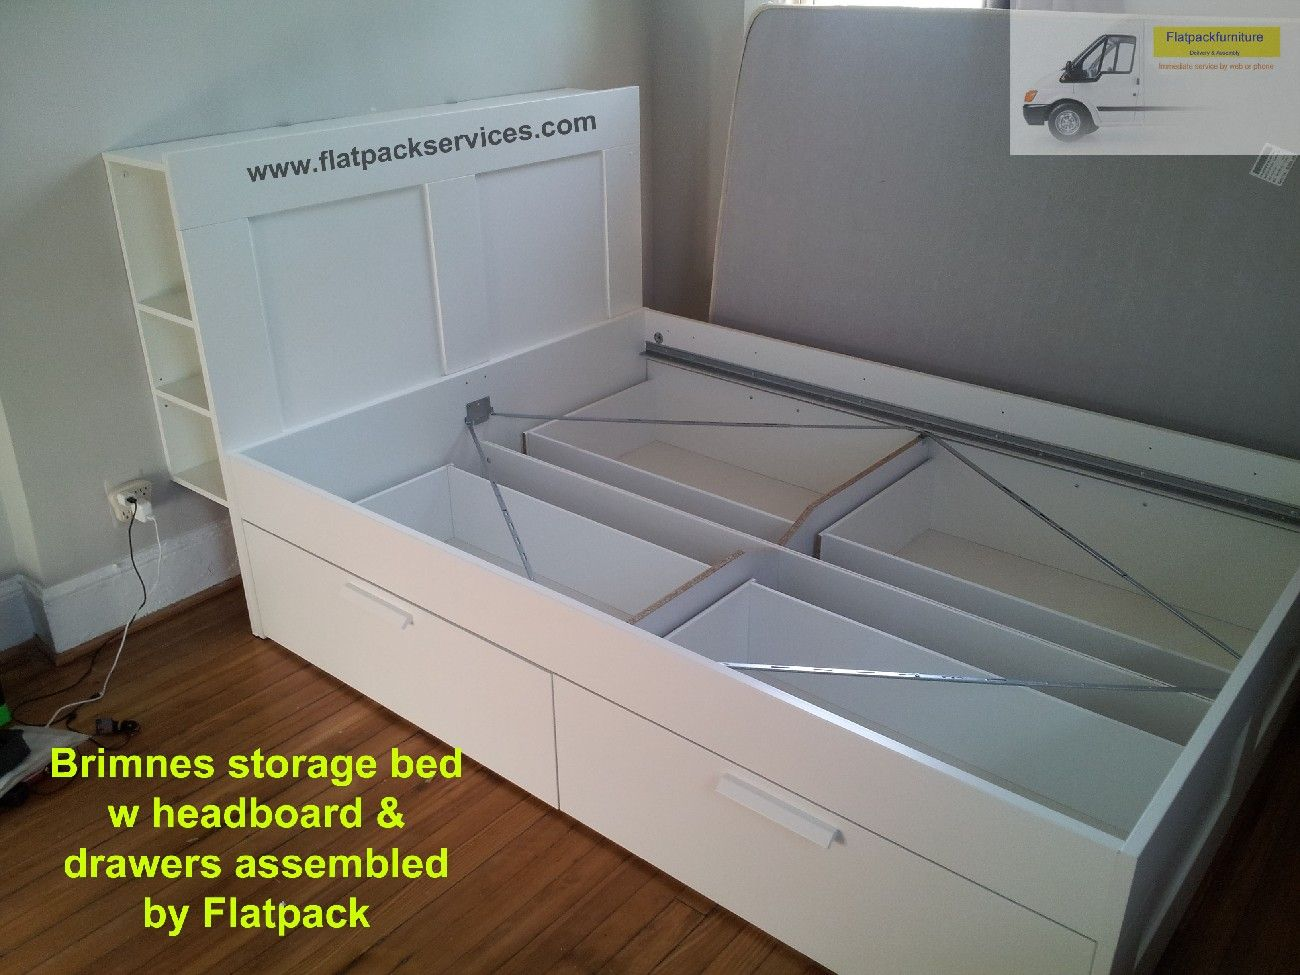 Ikea Bed Assembly In Washington Dc Silver Spring Md 301 971 7219 Contactless Ikea Bed Storage Bed Ikea Furniture Assembly,Front Door And Shutter Colors For Red Brick House